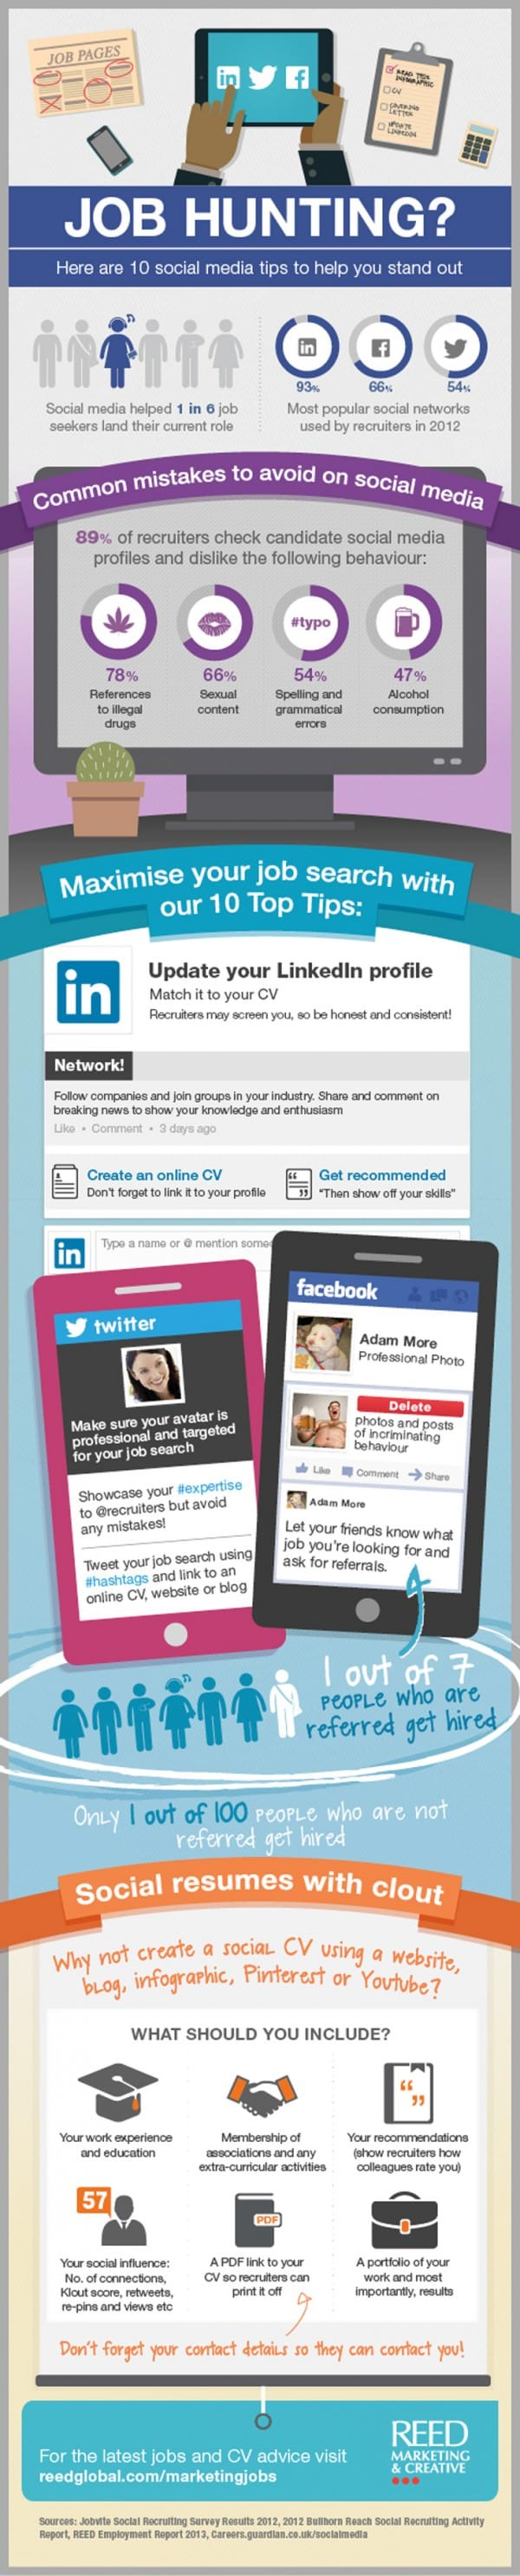 10 tips to improve your social network profile to win your